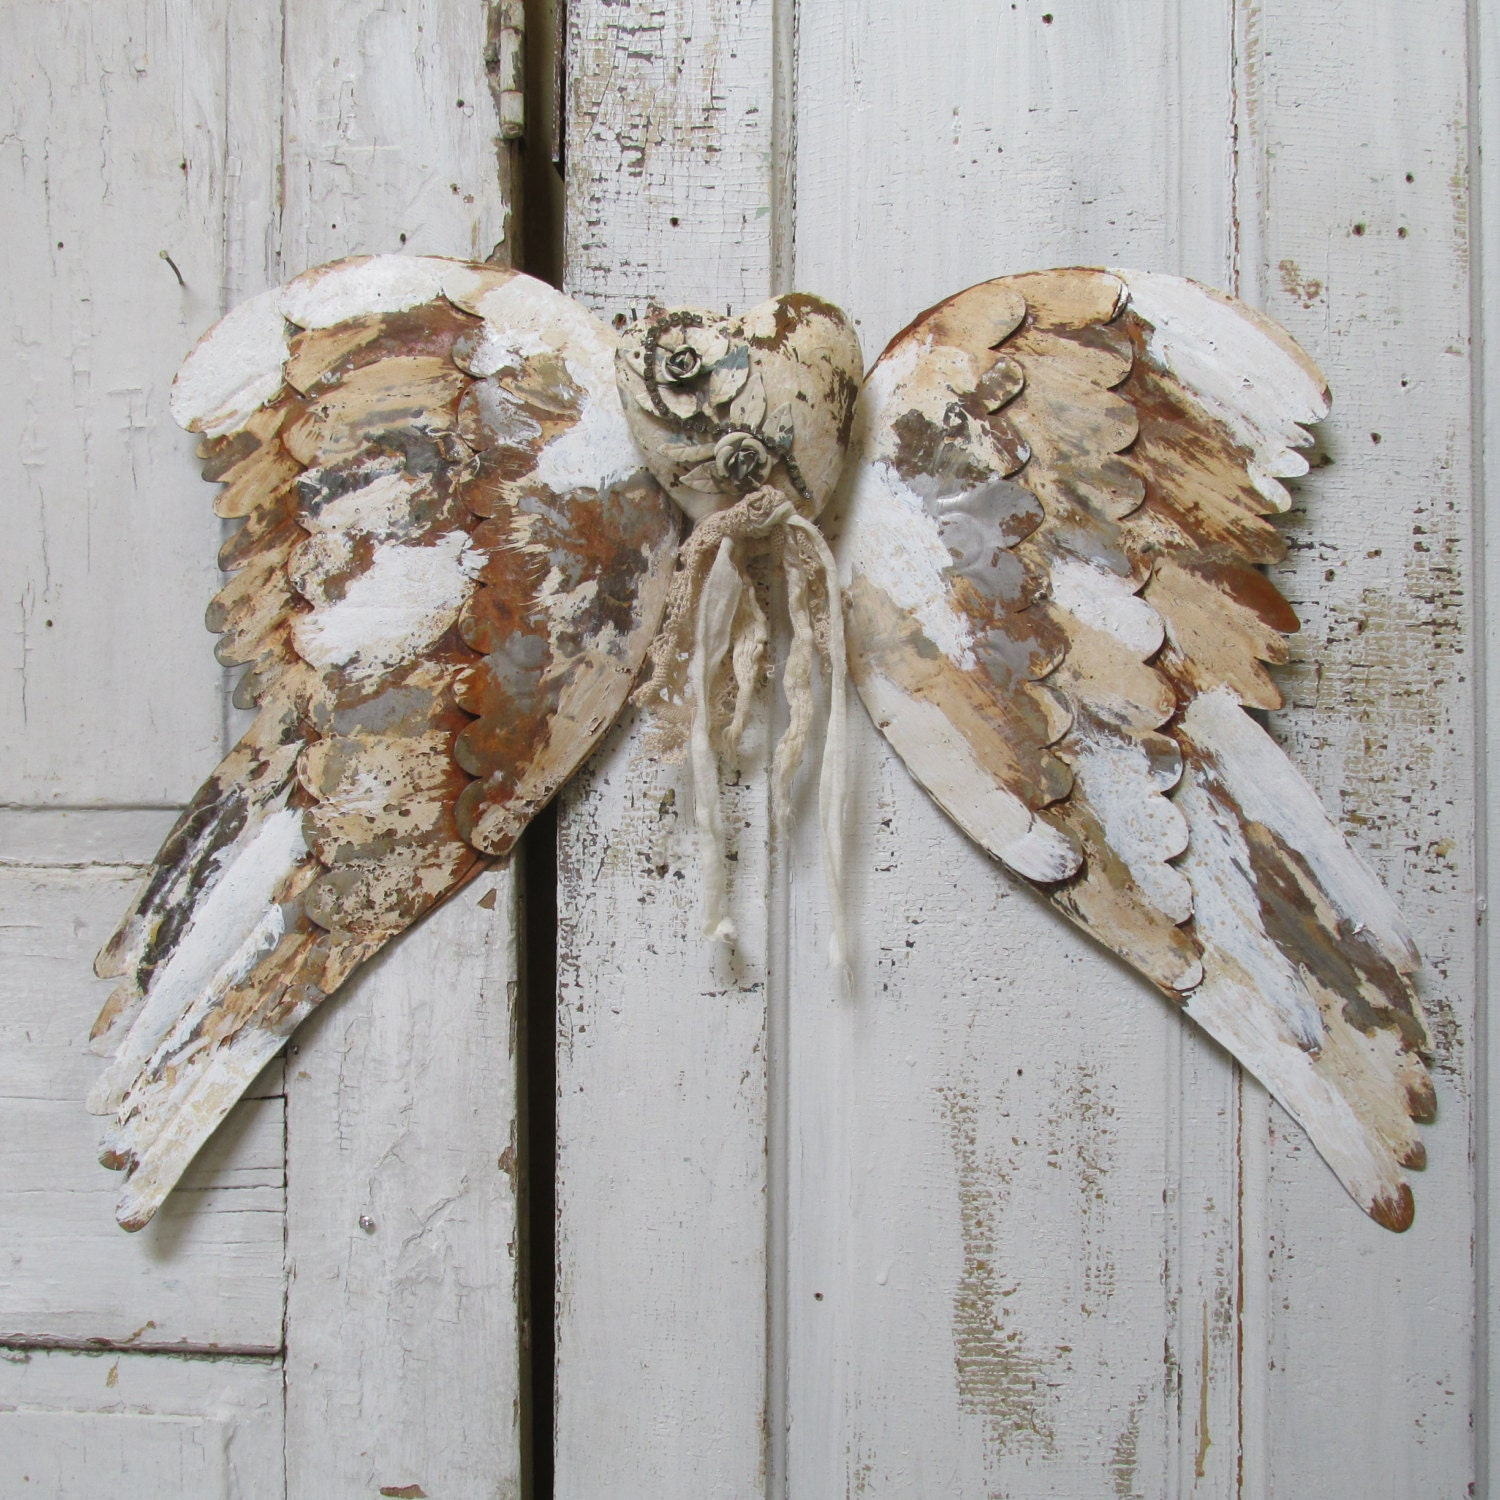 Distressed Rusty Metal Angel Wings Wall Decor With Embellished